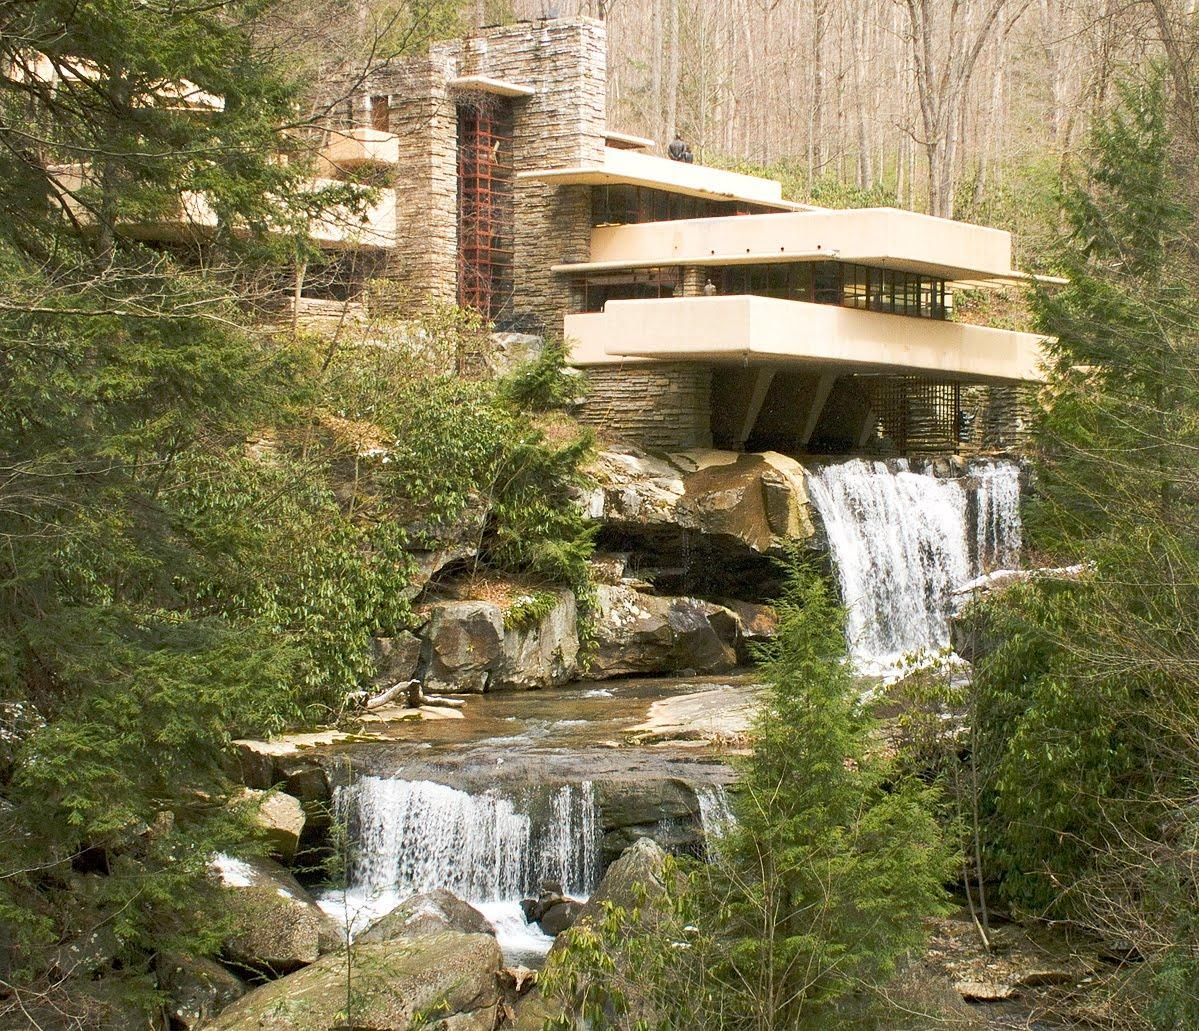 Modern Architecture Frank Lloyd Wright ap art history > ness > flashcards > modern architecture